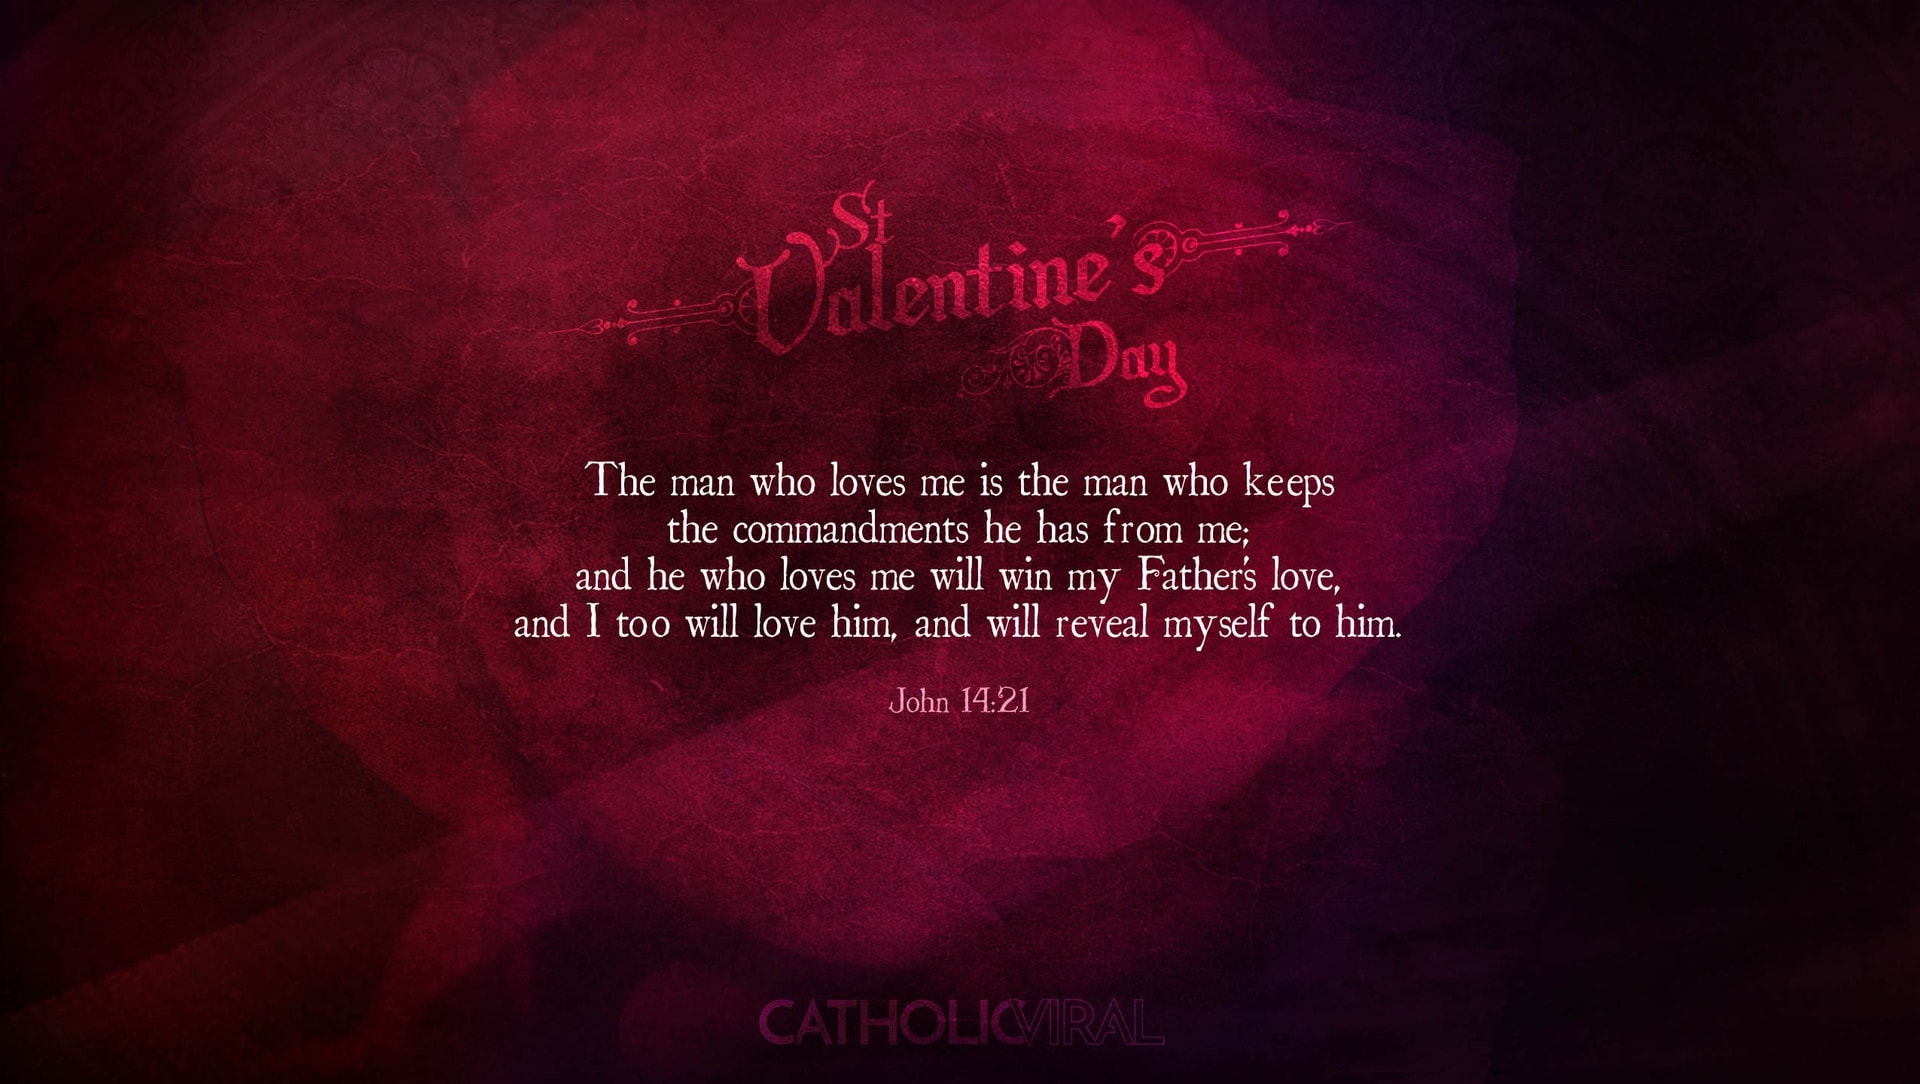 Free Live Fall Wallpaper 25 Valentines Day Bible Verses On Love 25 Free